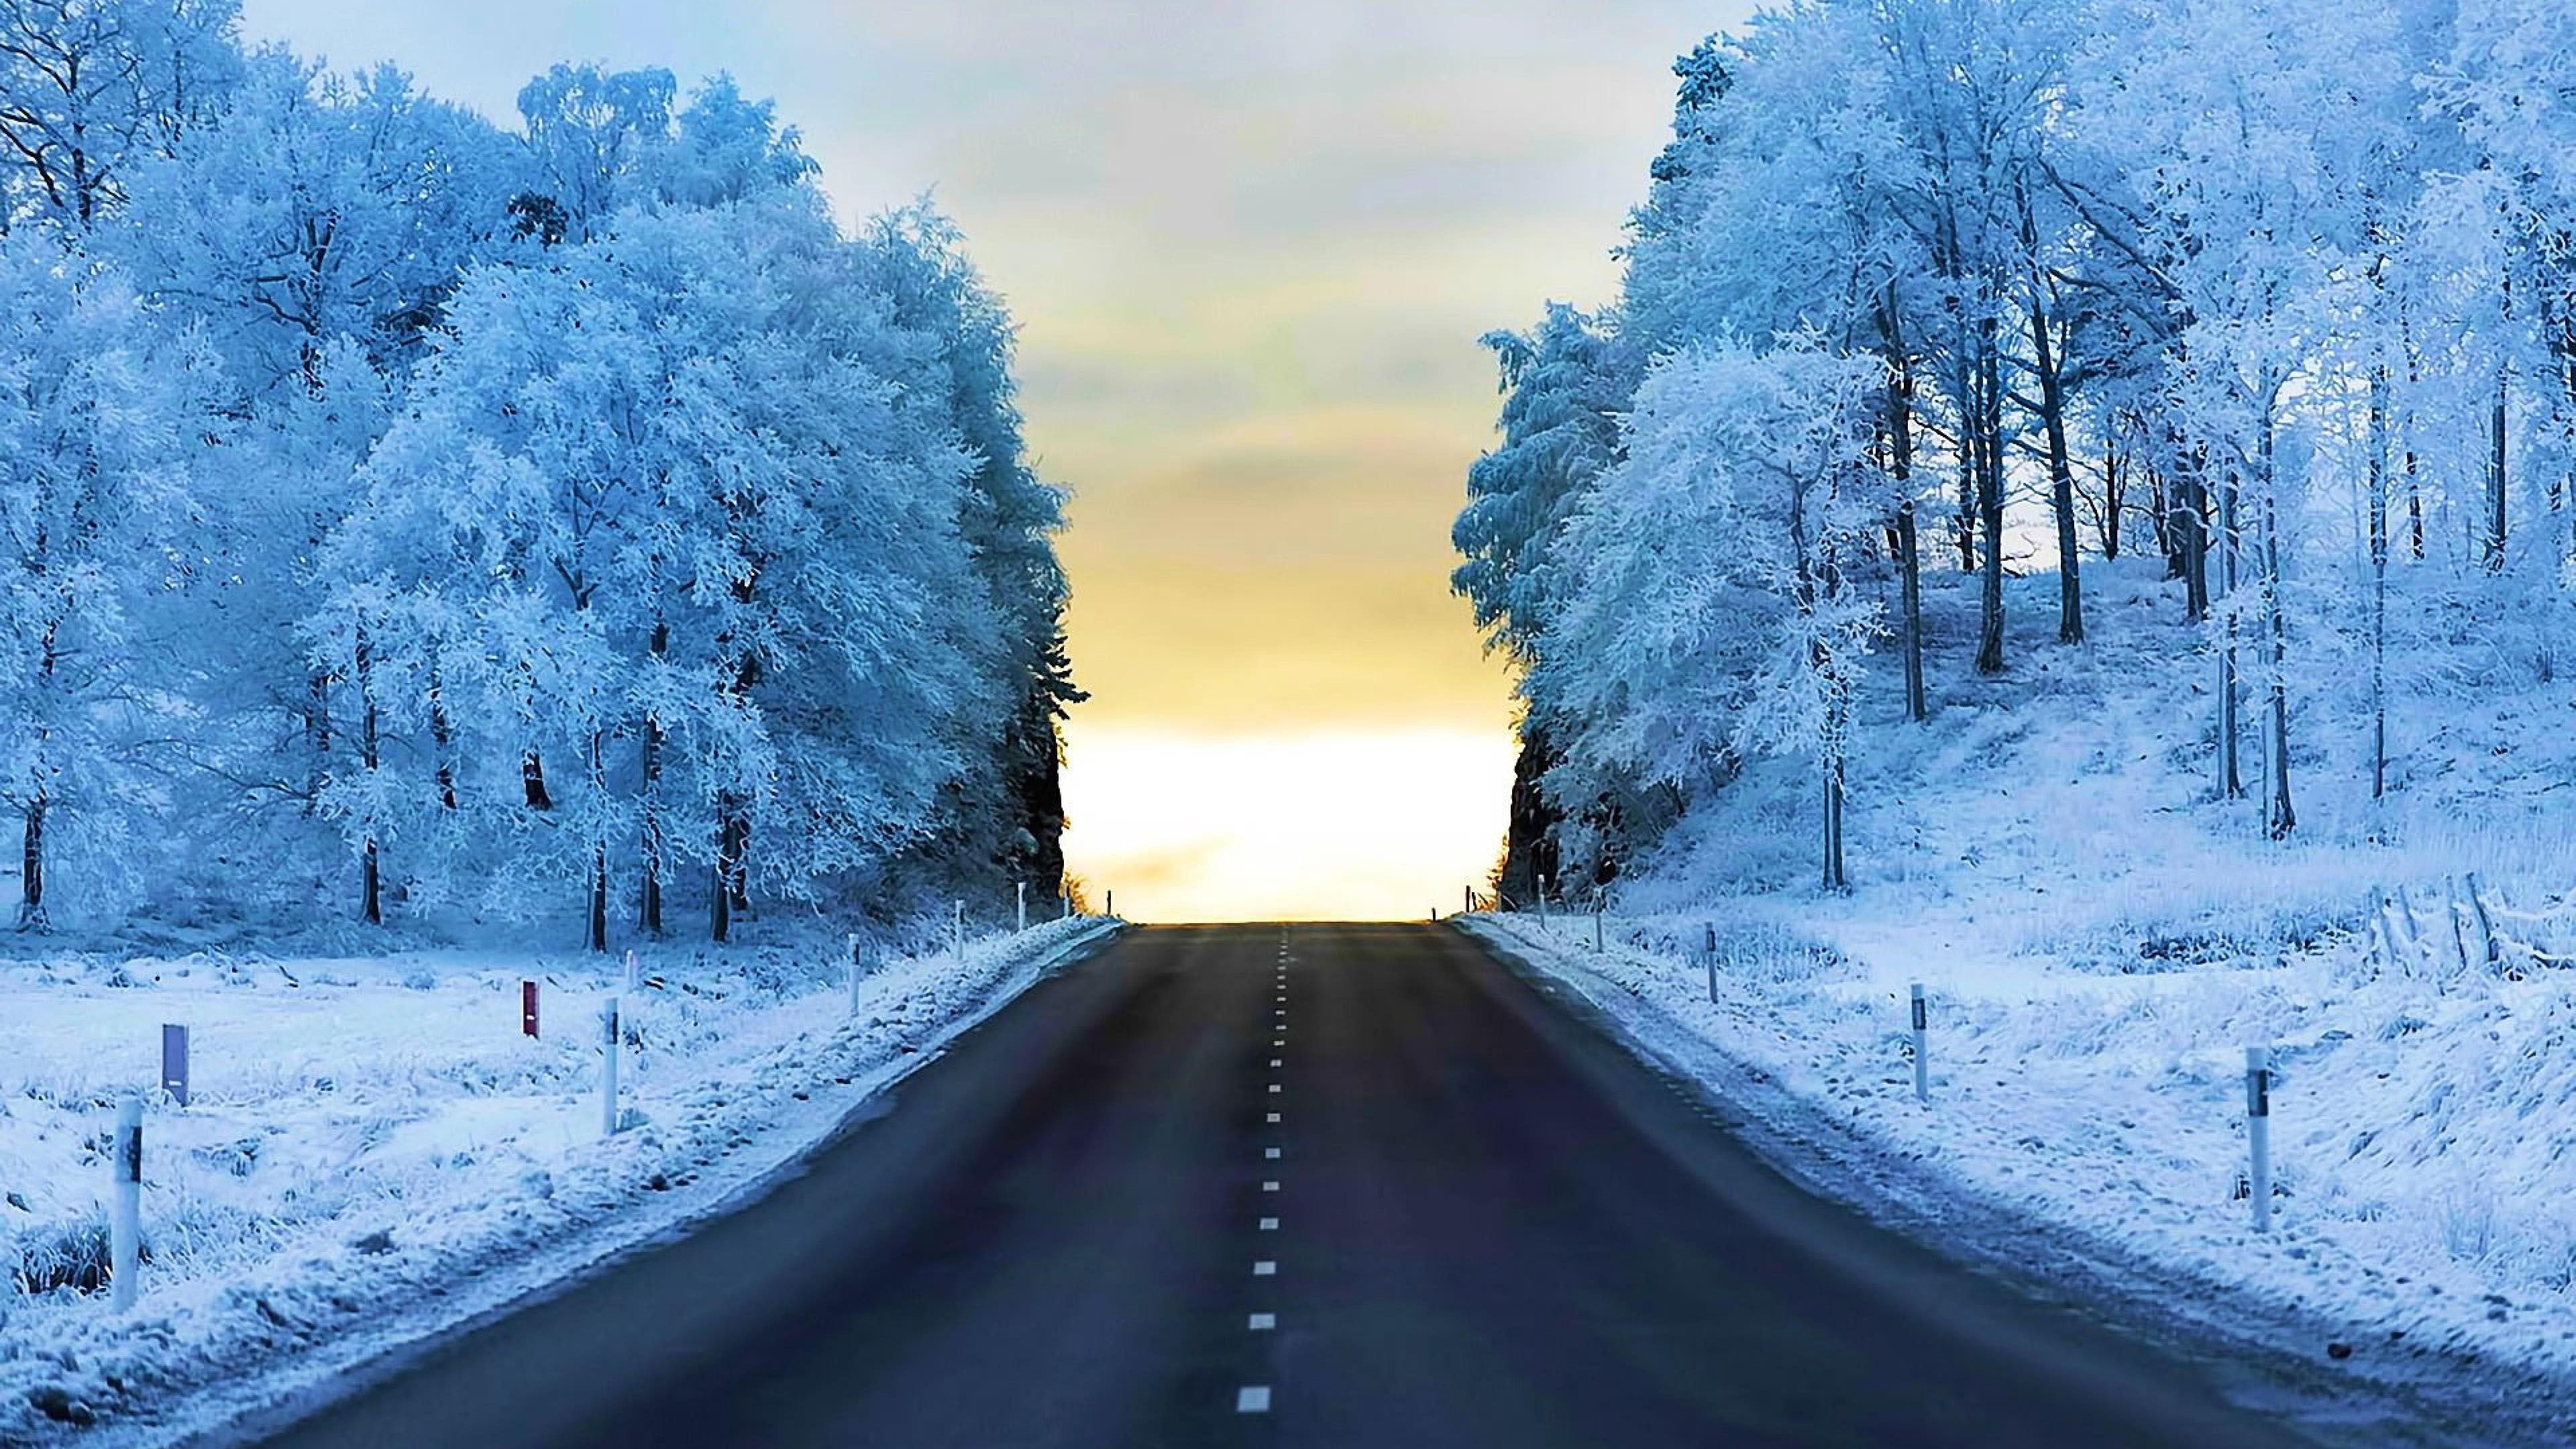 life ice cold crystal frozen snow winter solid